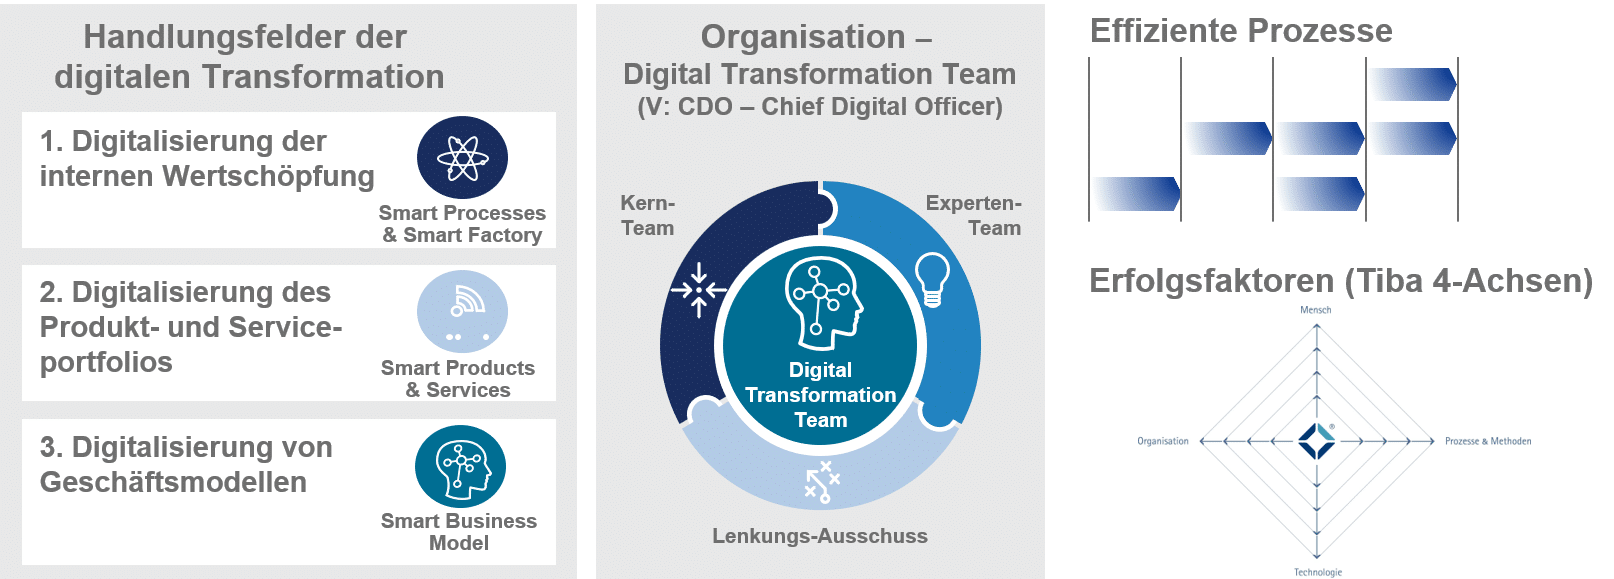 Programmgestaltung der Digitalen Transformation